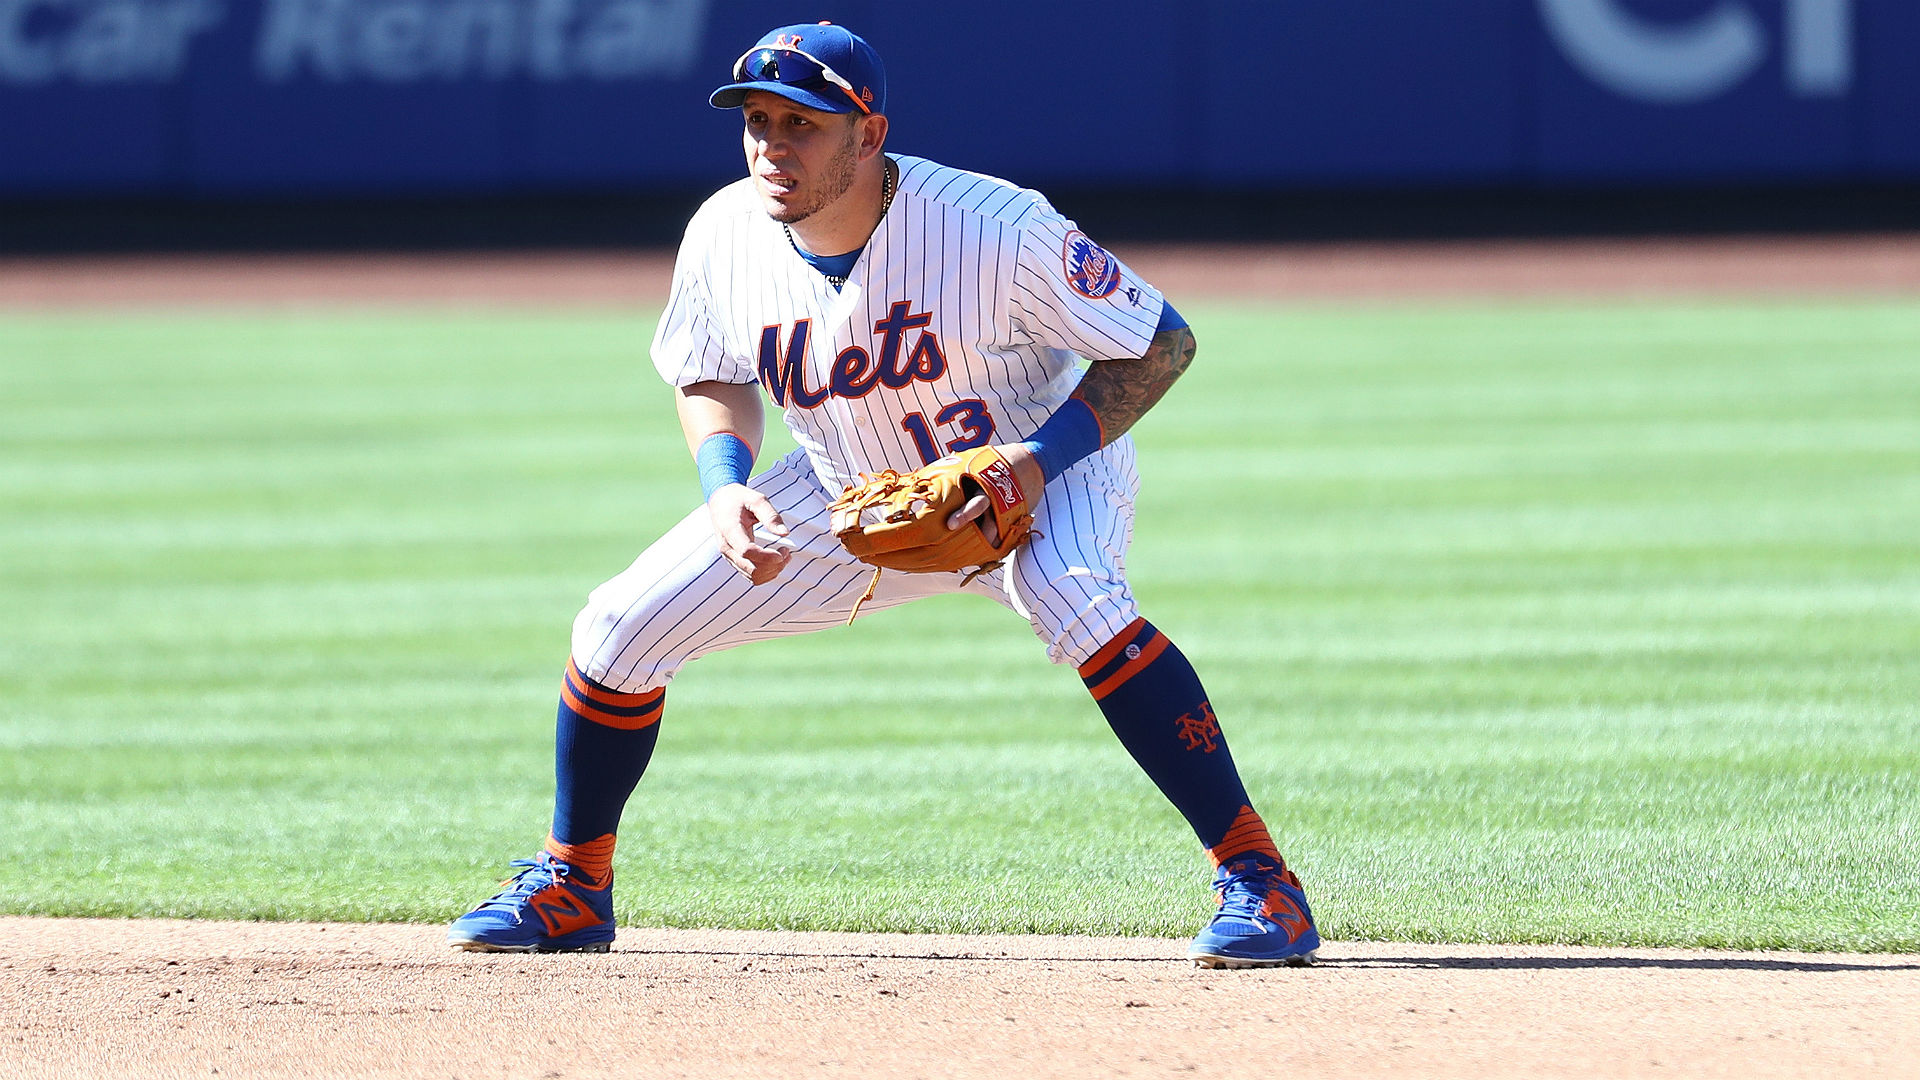 MLB hot stove: Asdrubal Cabrera, Rangers reportedly agree to 1-year deal